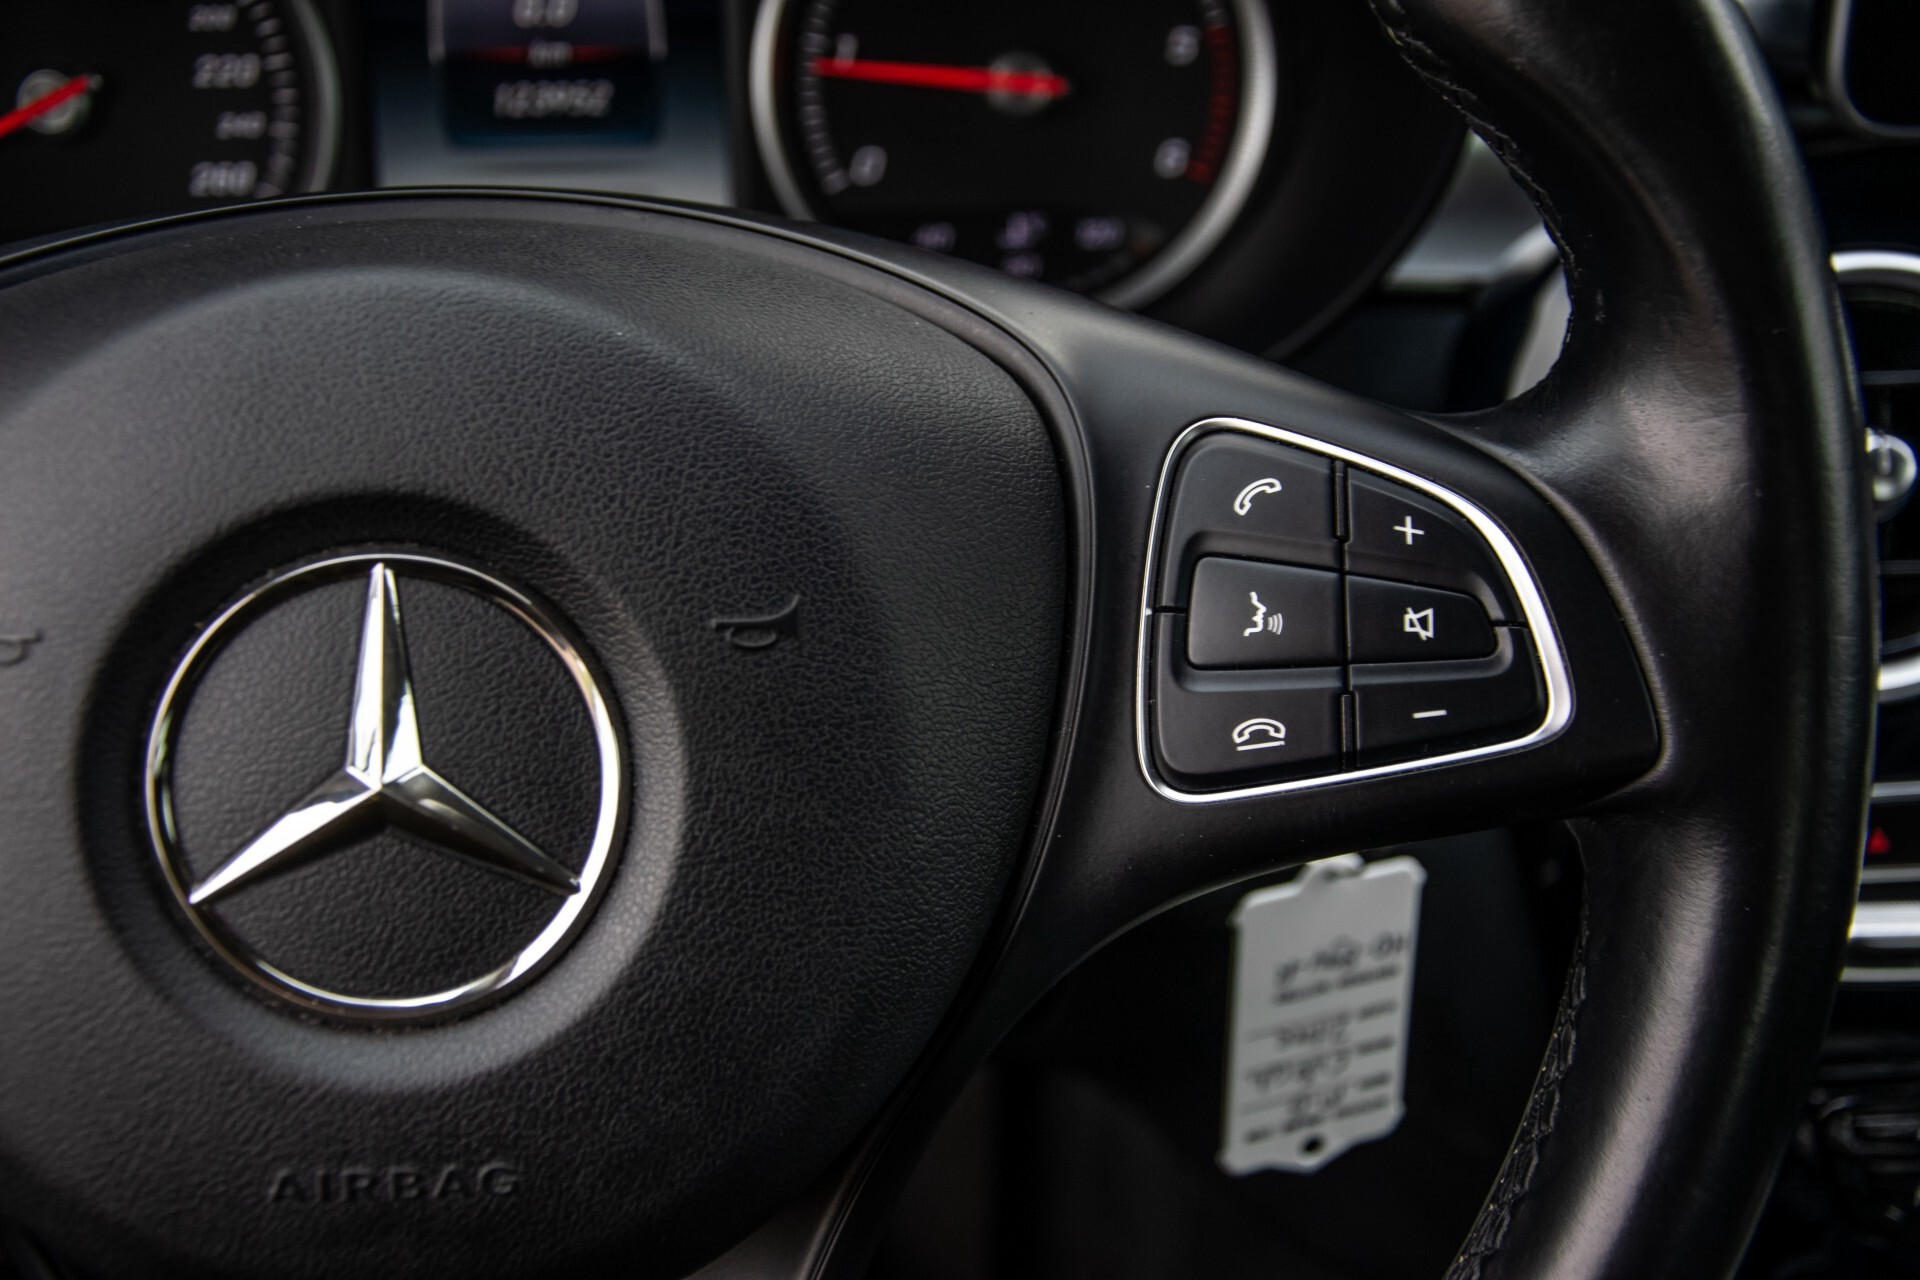 Mercedes-Benz C-Klasse 180 Bluetec Lease Edition Intelligent Light System/Cruise Control/Navi Foto 12